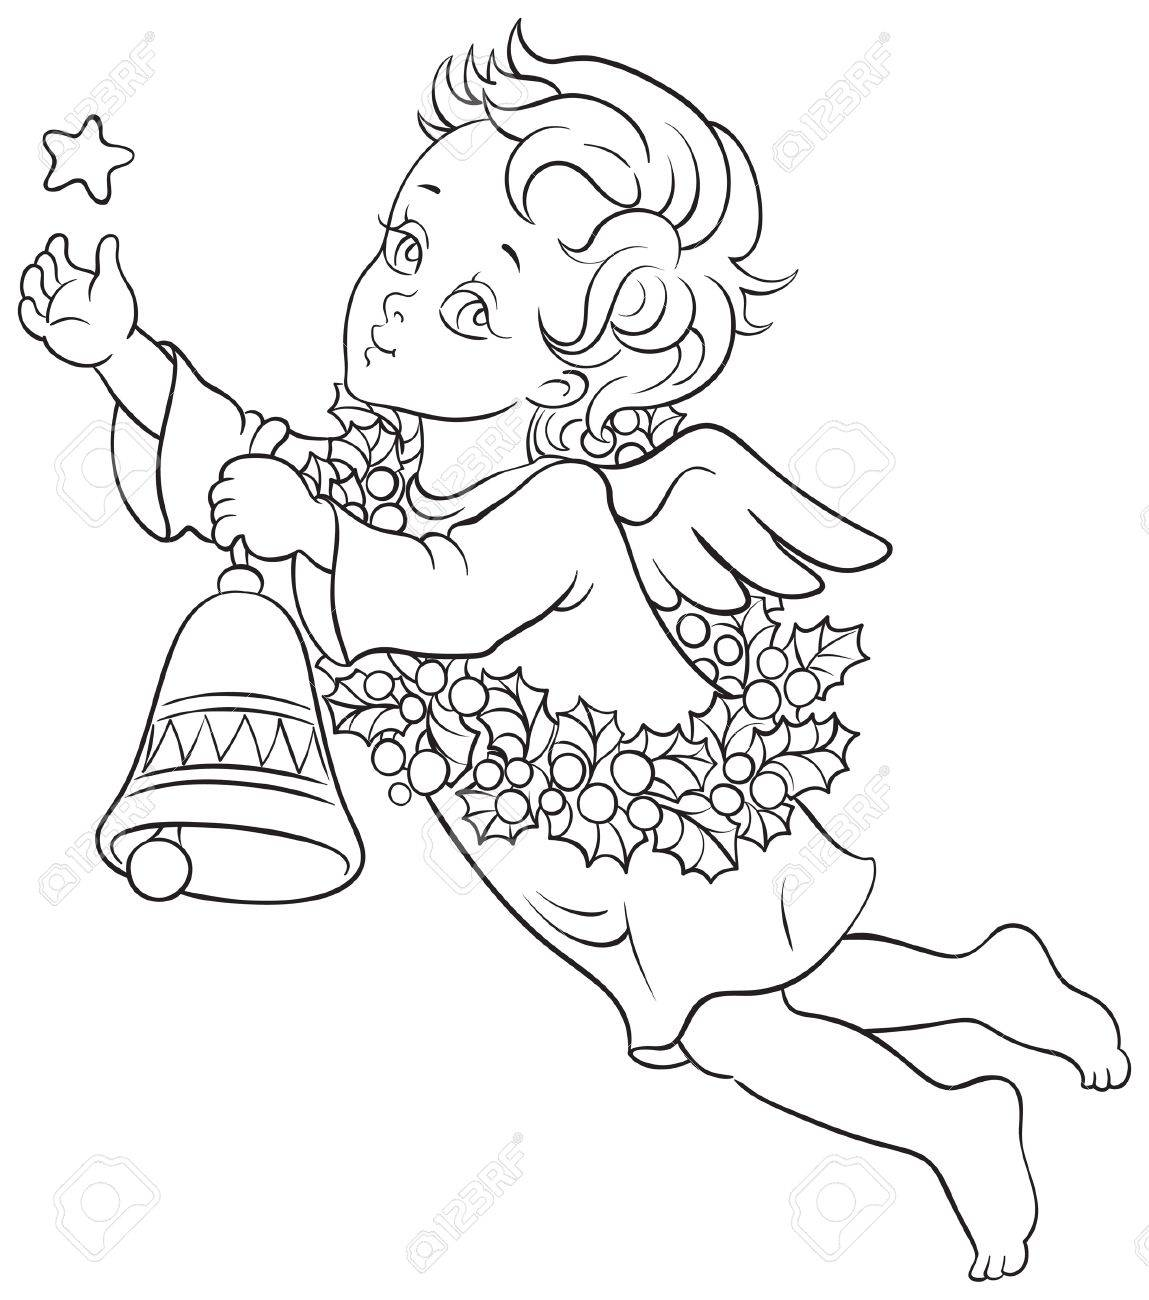 1149x1300 Pictures Christmas Angel Drawings And Sketches,